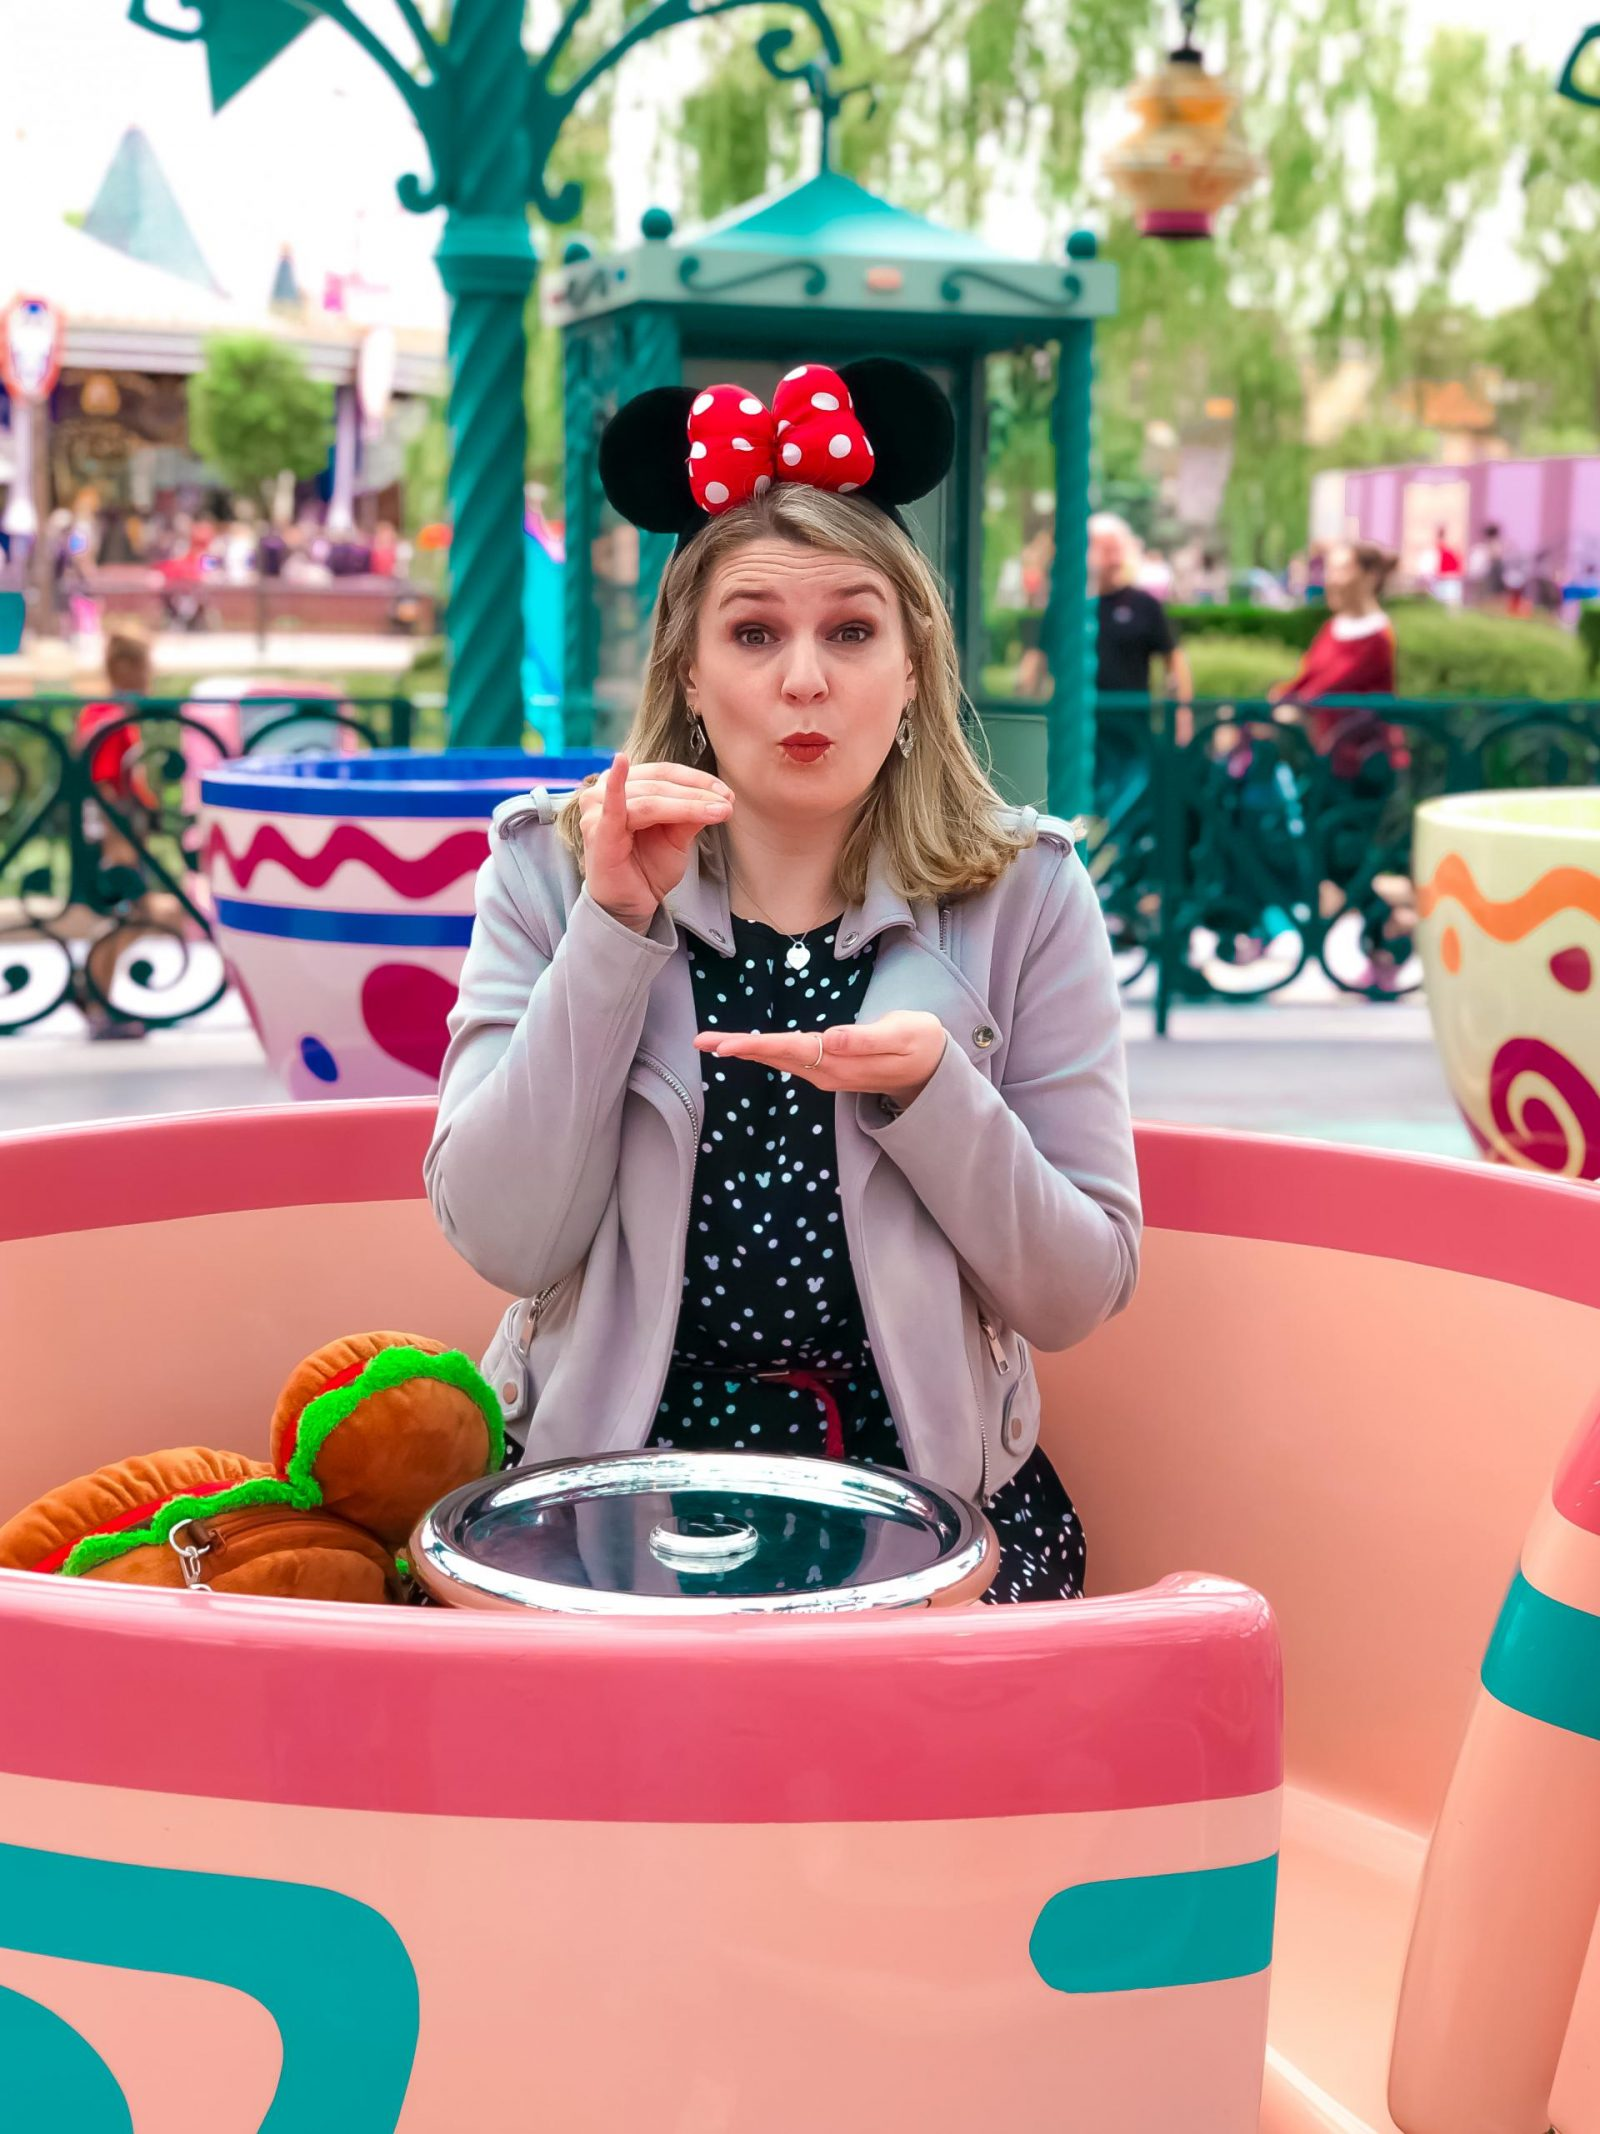 Mad Hatter's tea Party - one of the most Instagrammable spots at Disneyland Paris